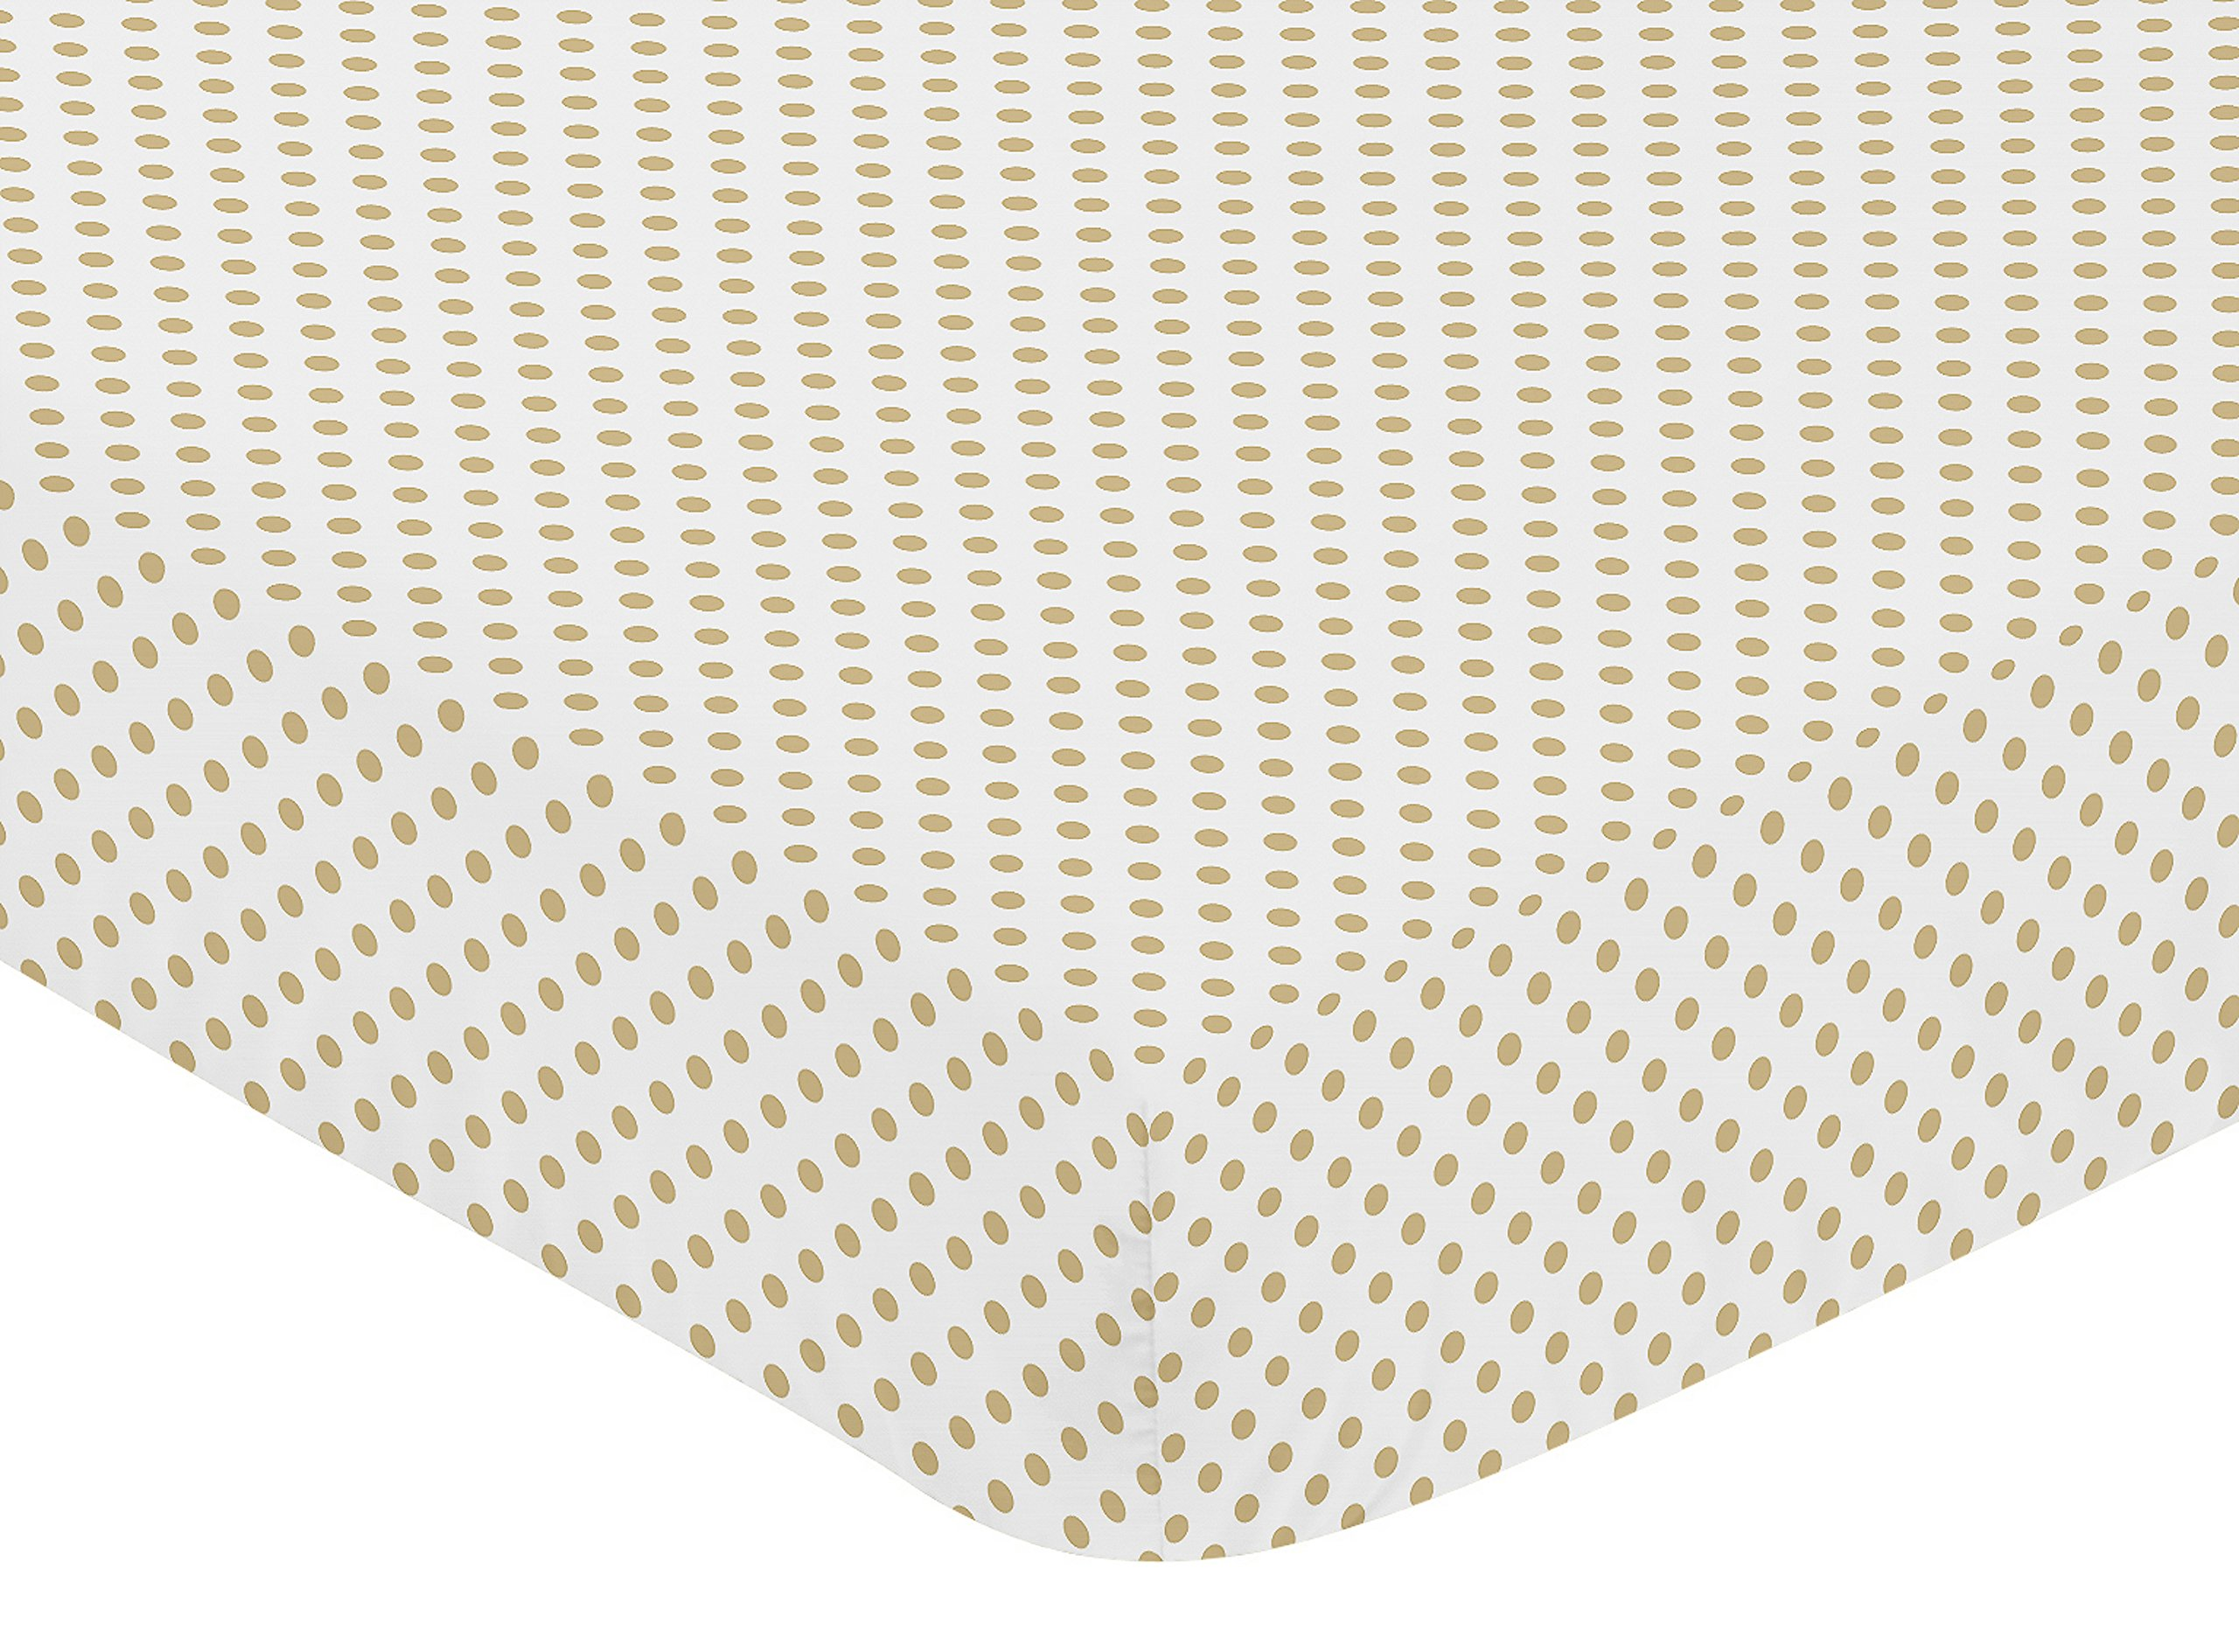 Sweet JoJo Designs Gold and White Polka Dot Baby Or Toddler Fitted Crib Sheet for Watercolor Floral Collection